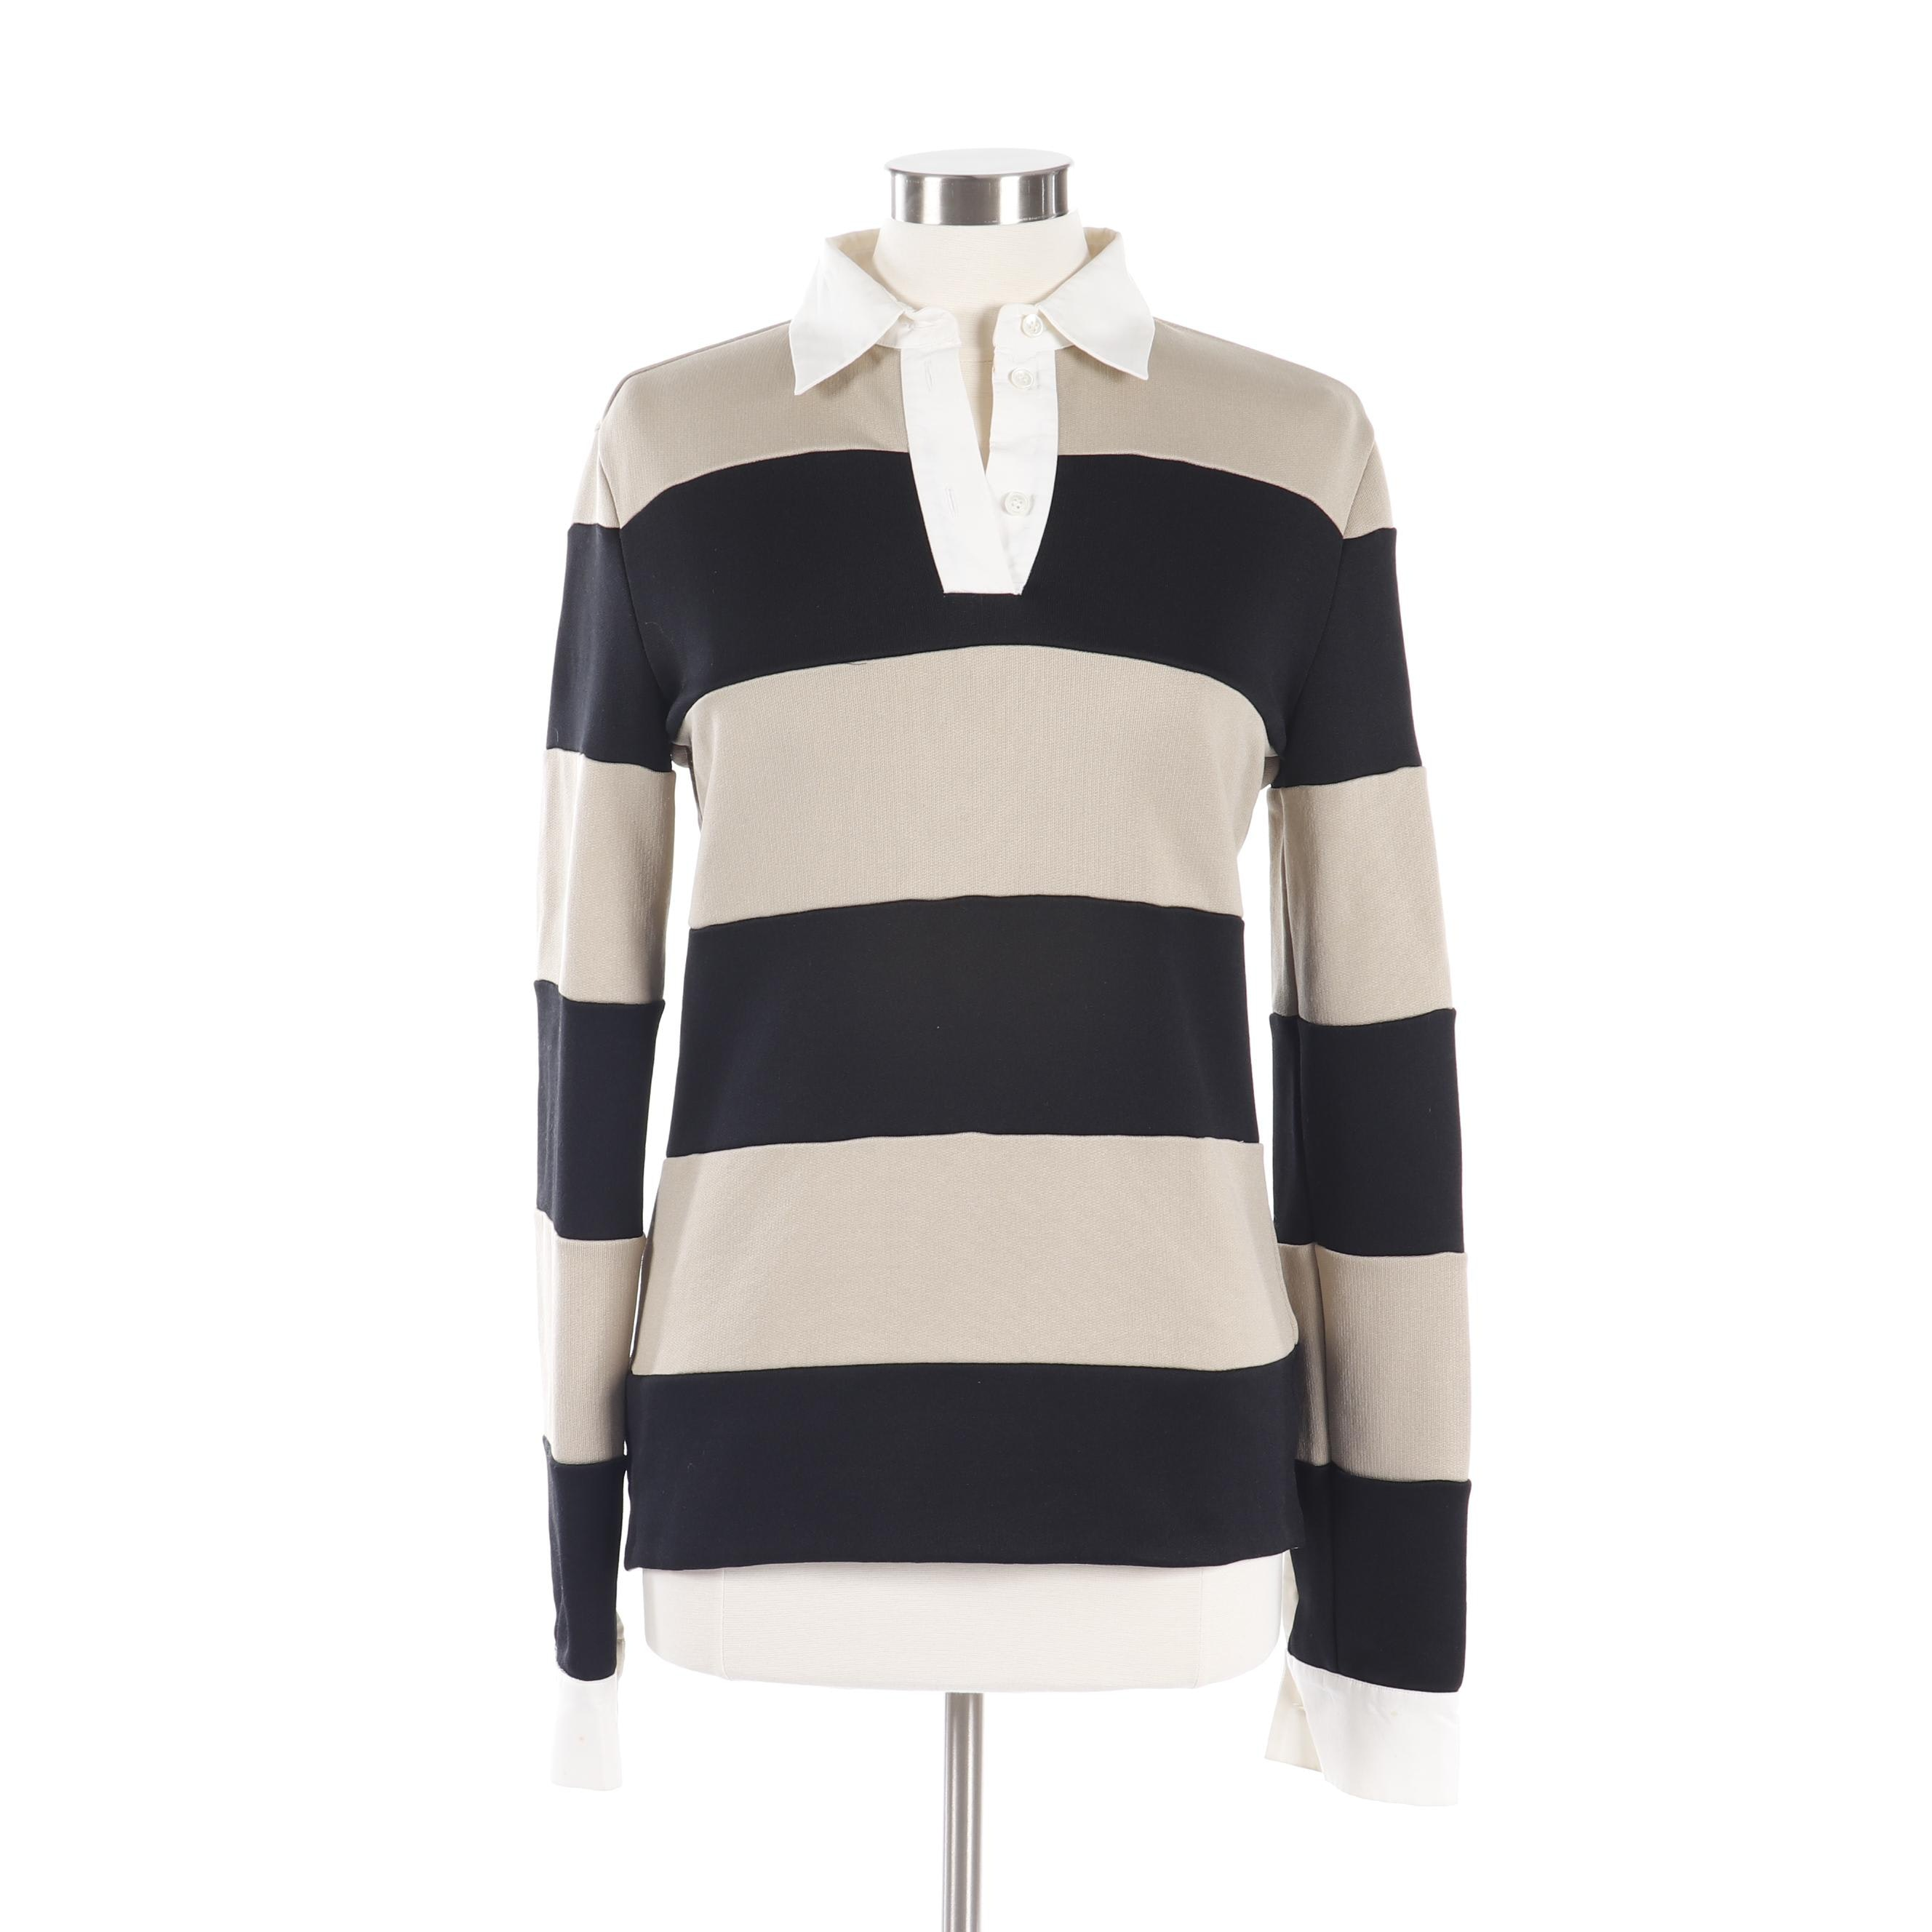 Women's Viktor & Rolf Black and Tan Striped Rugby Style Shirt